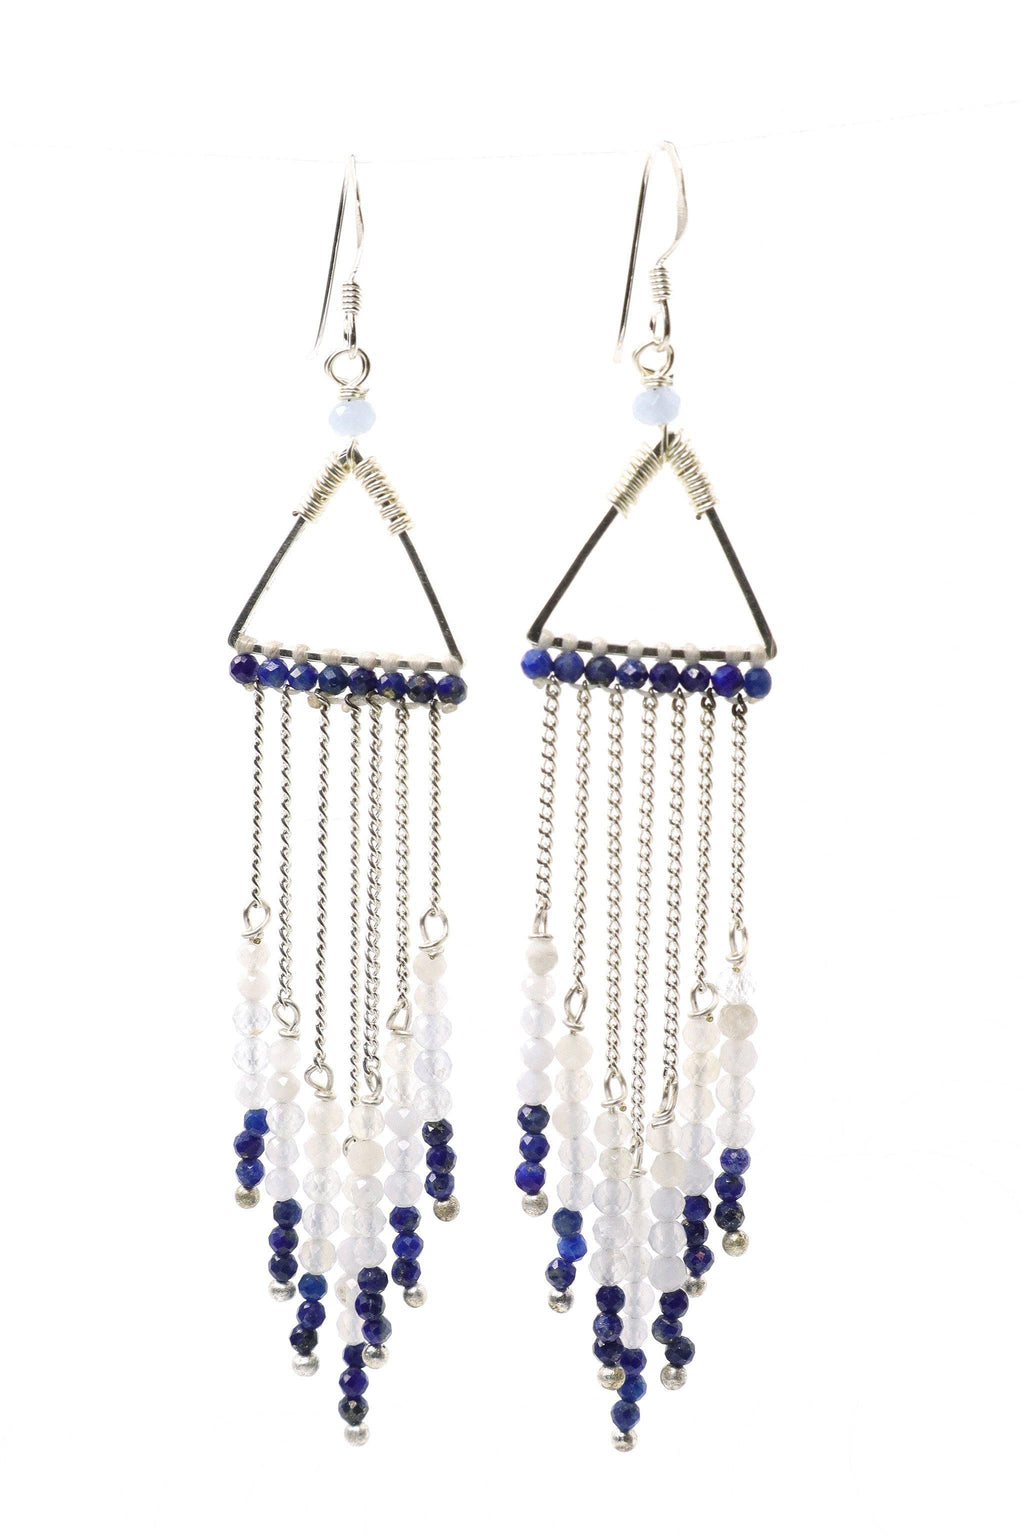 These waterfall statement earrings are a show stopper. They feature beautiful, faceted white quartz, crystal quartz, and lapis lazuli gemstones hanging from a silver triangle in graduated tones from light to dark. They are handmade with love in Thailand. This is a Fairtrade Product.